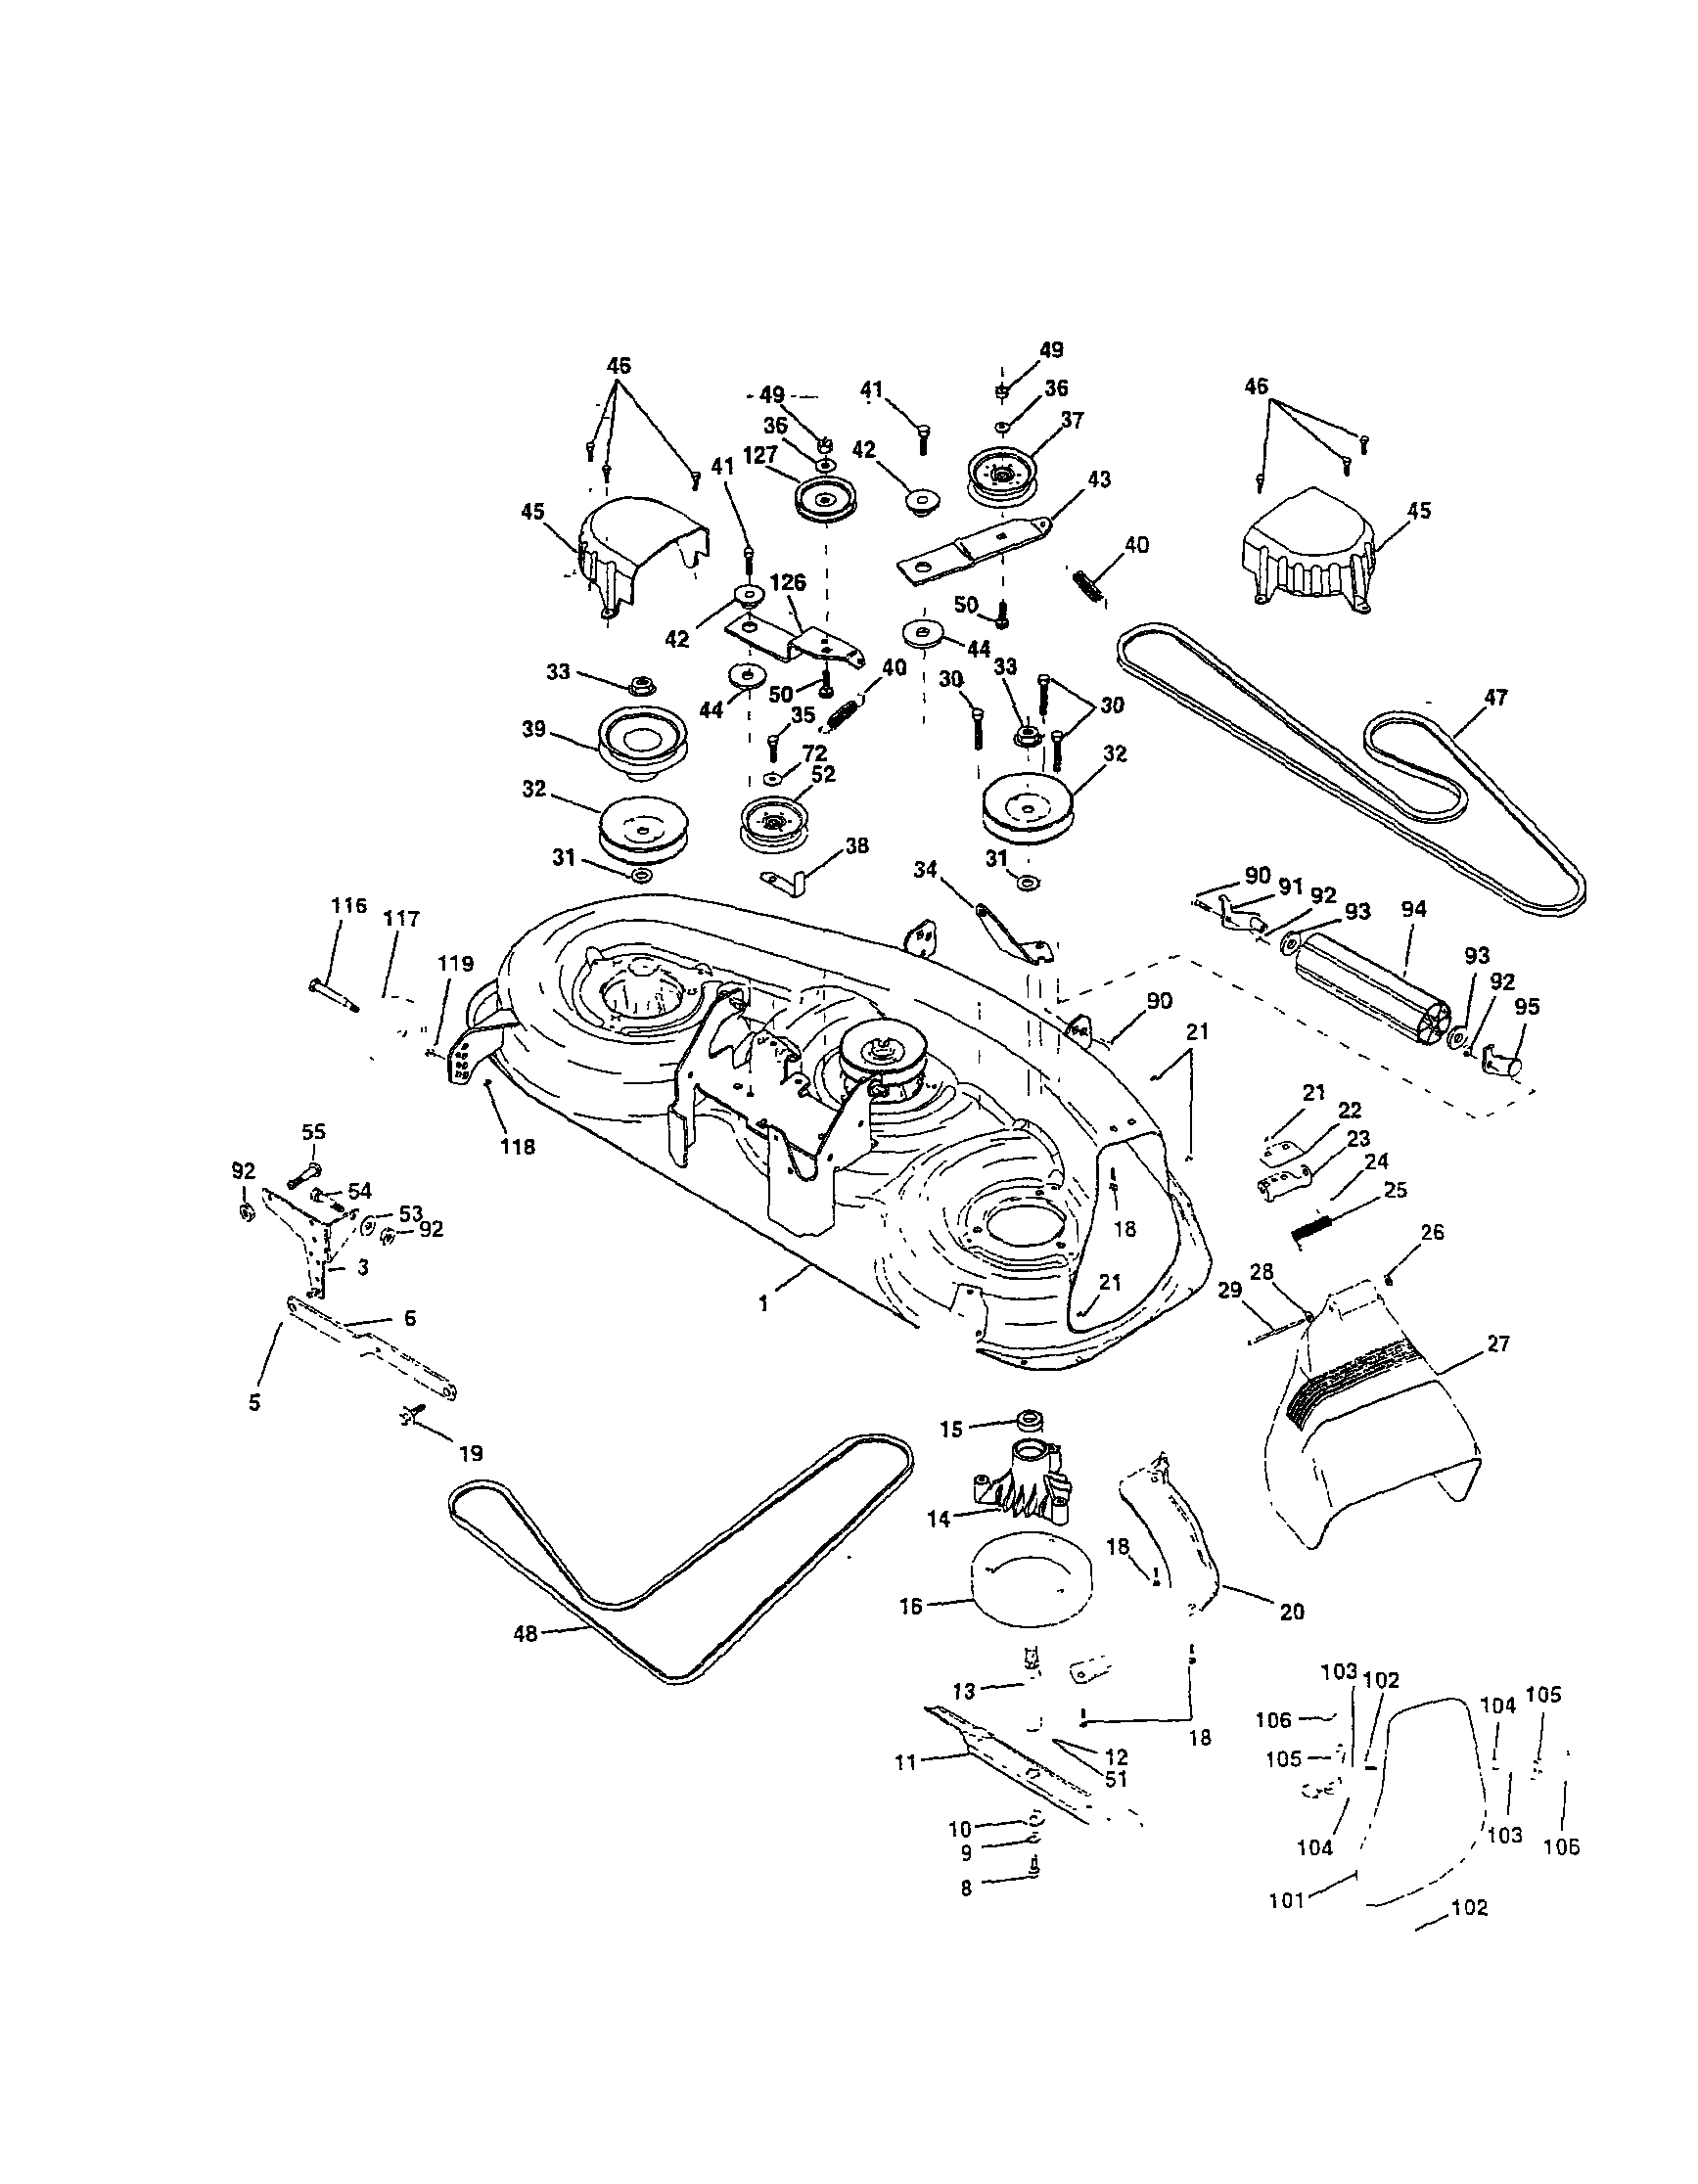 MOWER DECK Diagram & Parts List for Model yth180 Husqvarna